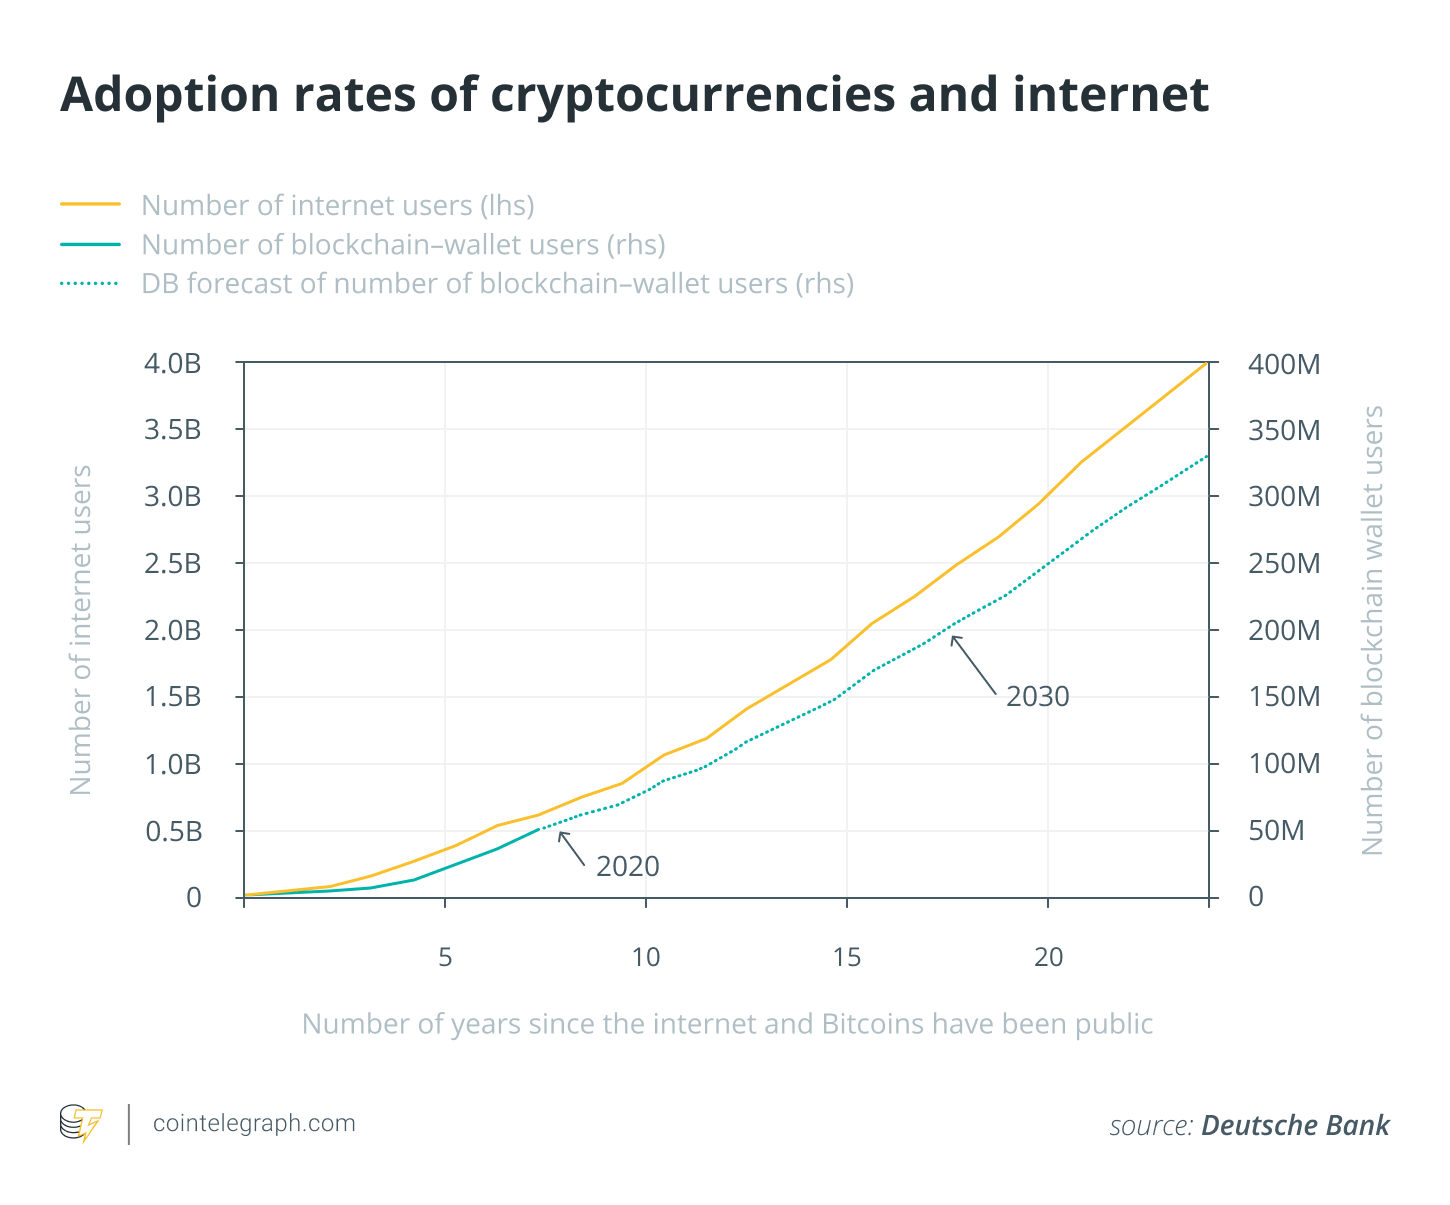 Adoption rates of cryptocurrencies and internet